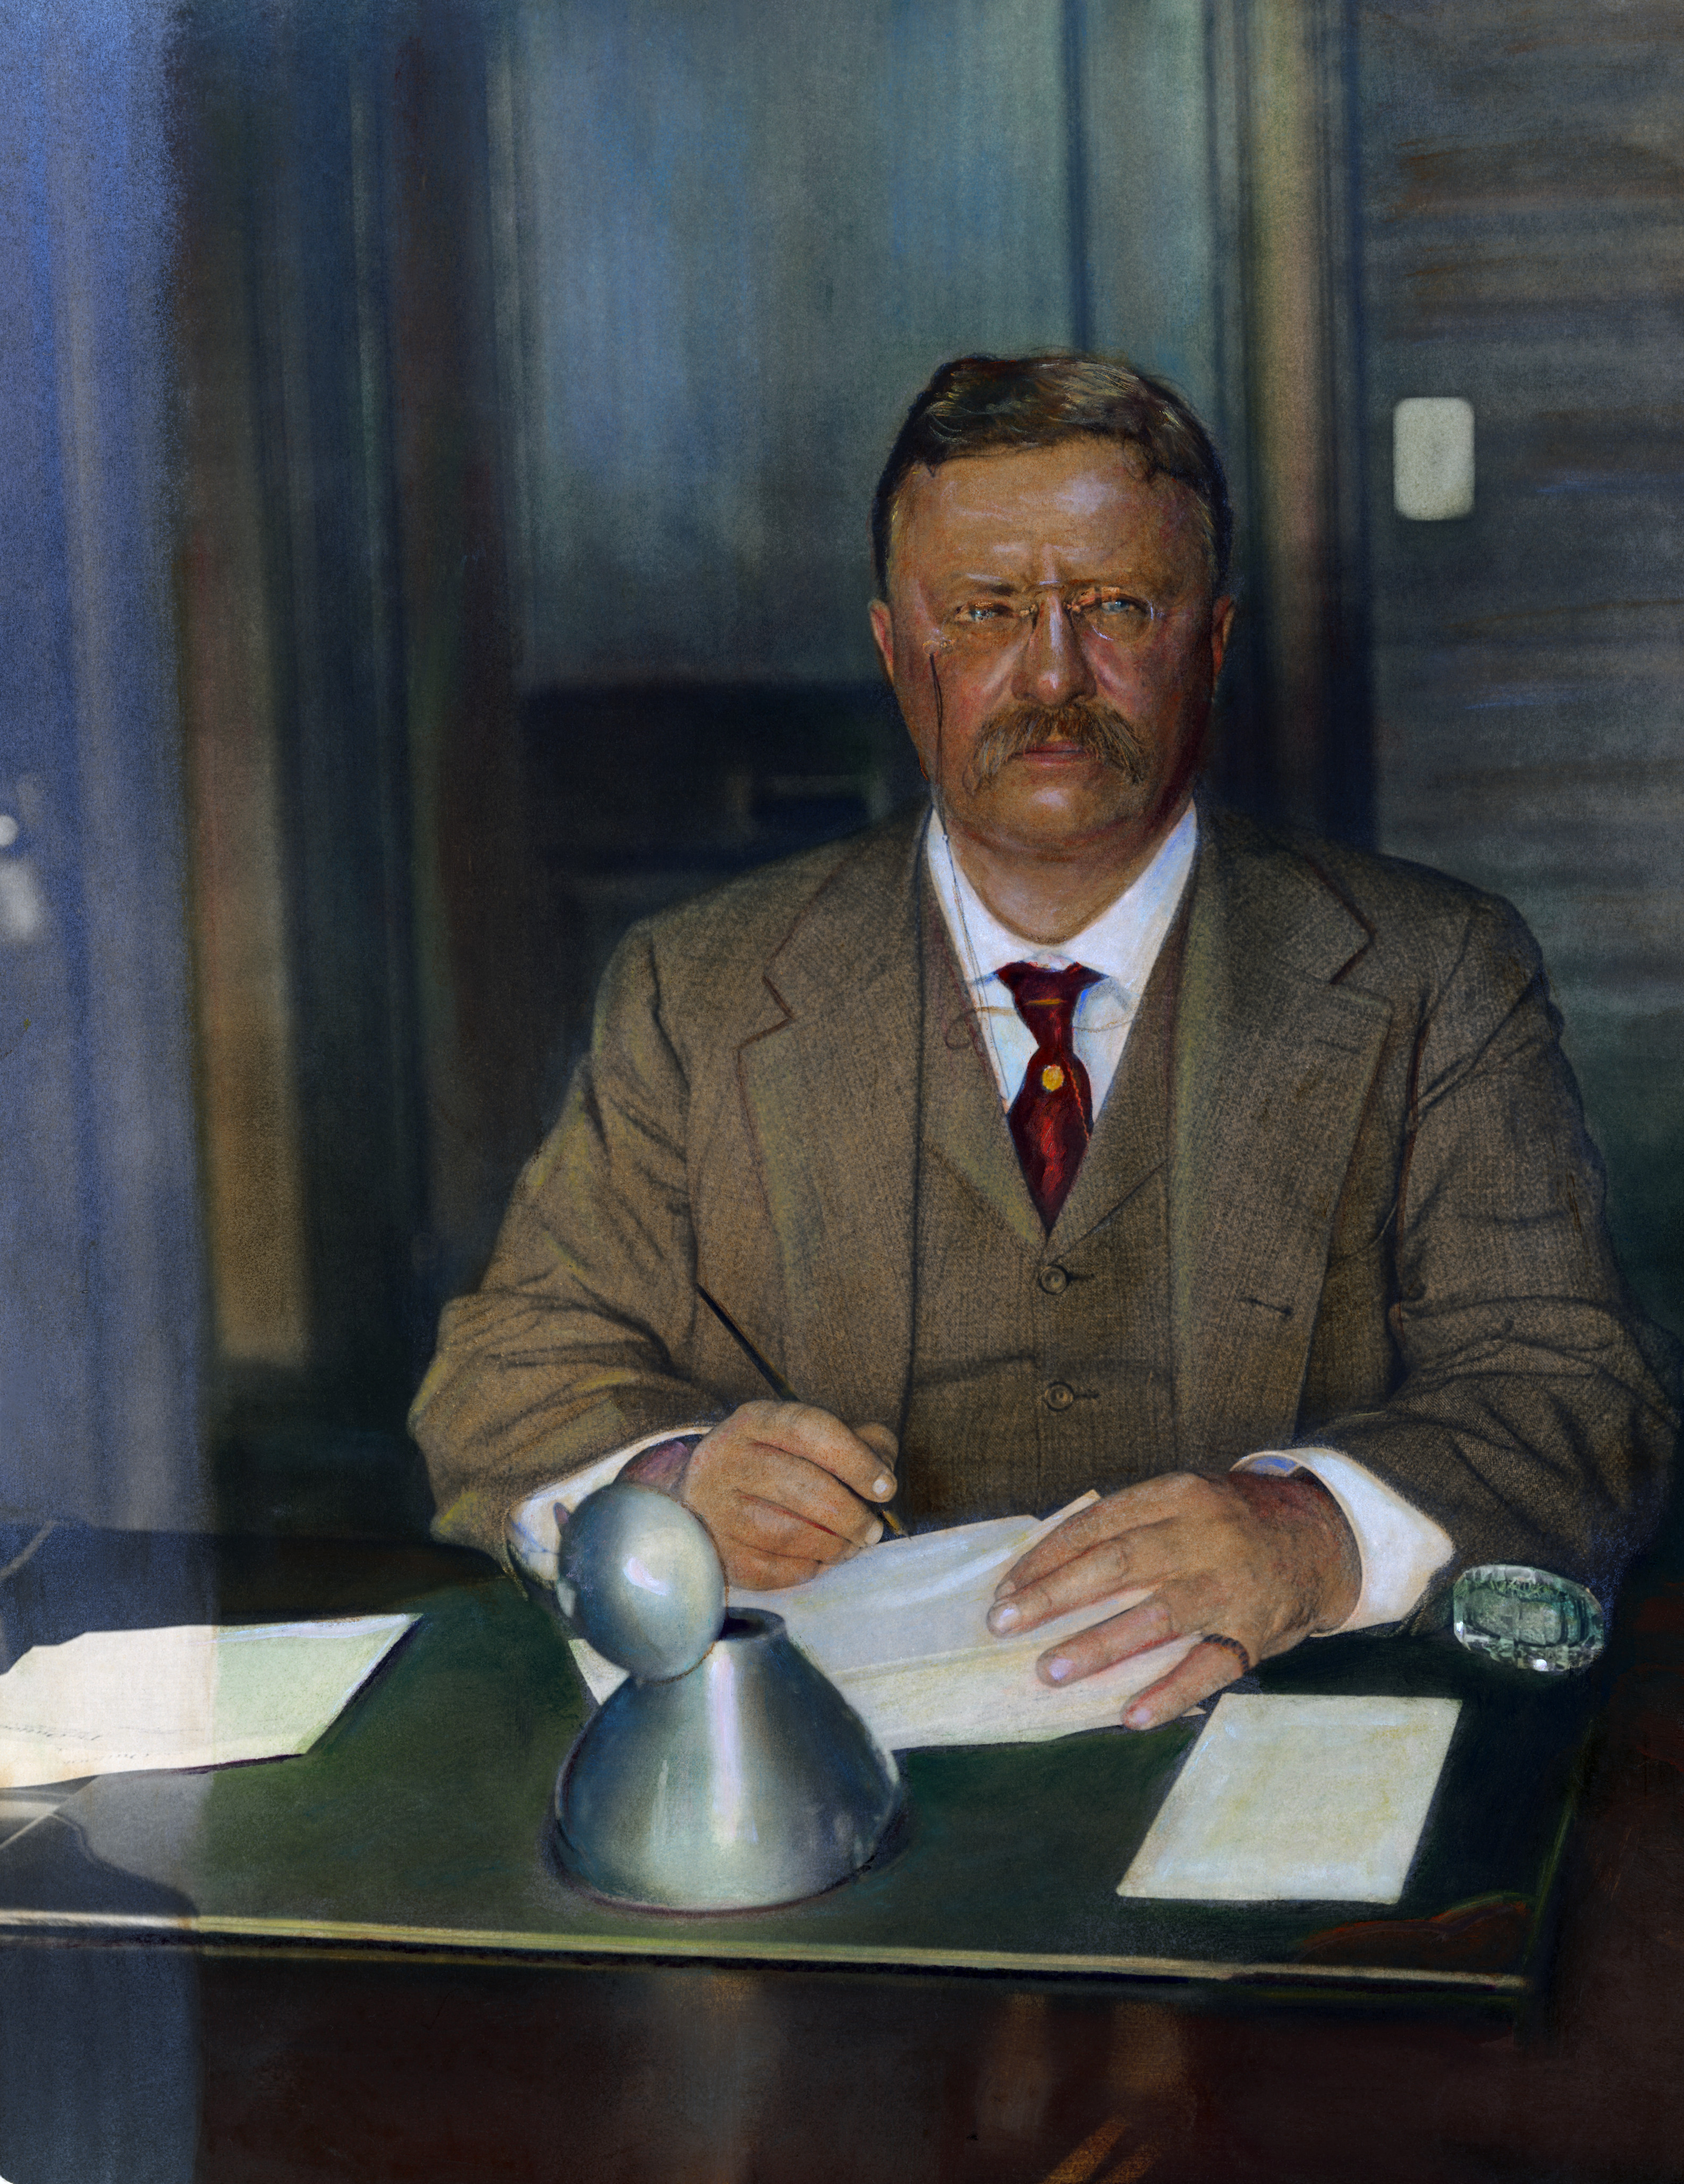 26th president of the united states, theodore roosevelt, teddy roosevelt, new york city